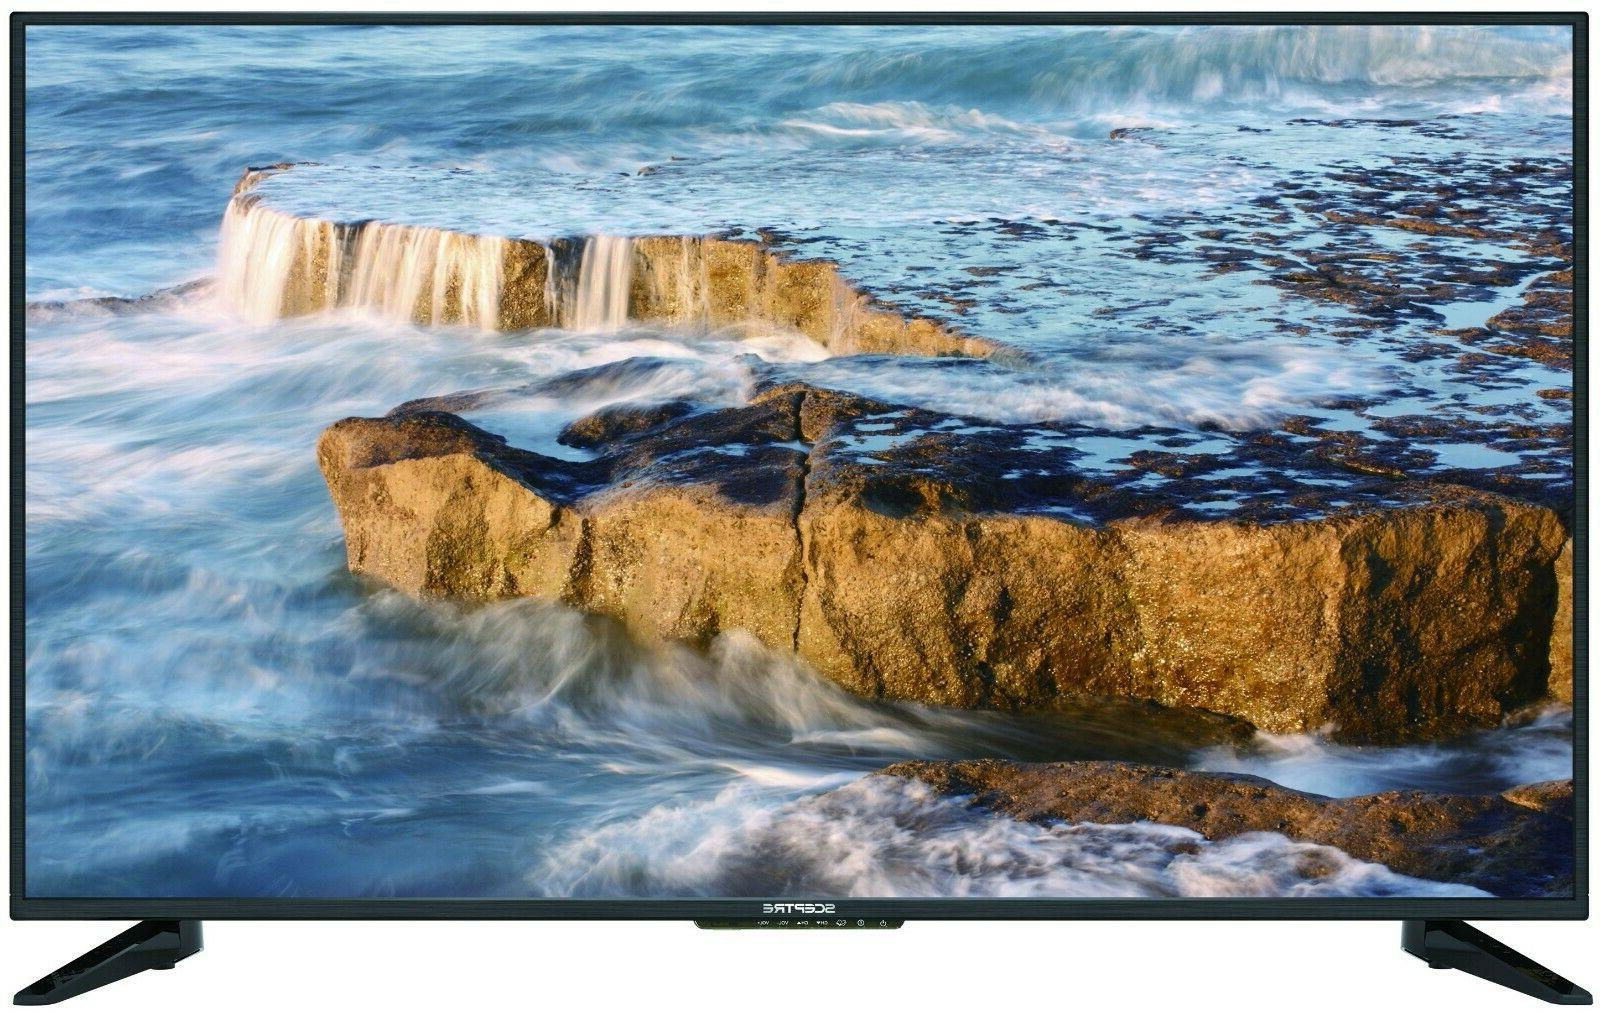 Sceptre 2160p LED TV